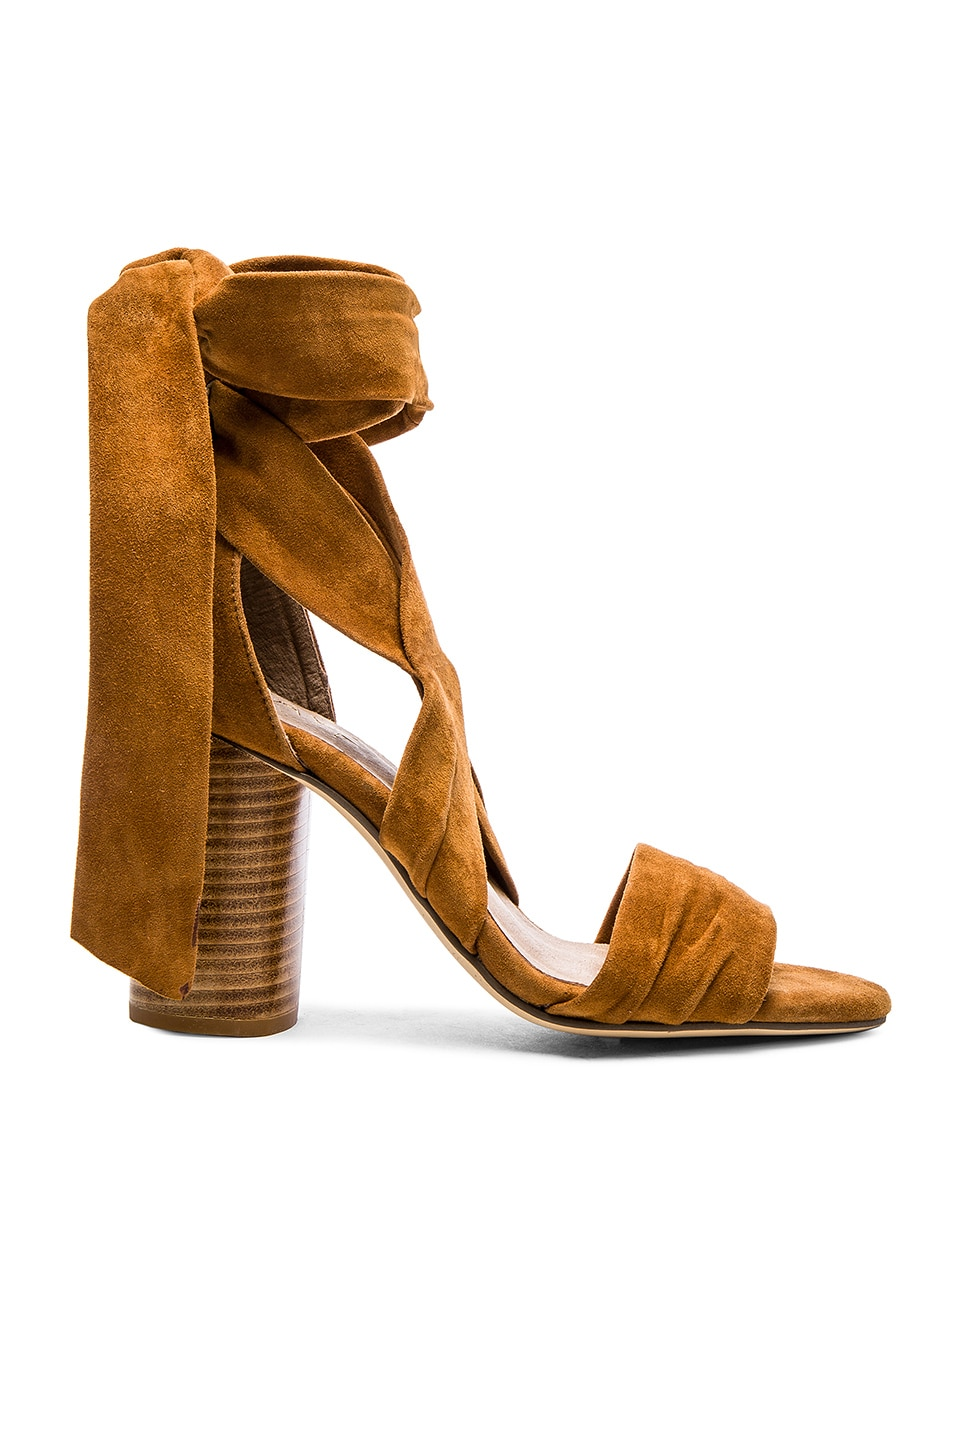 RAYE x REVOLVE Mia Heel in Whiskey